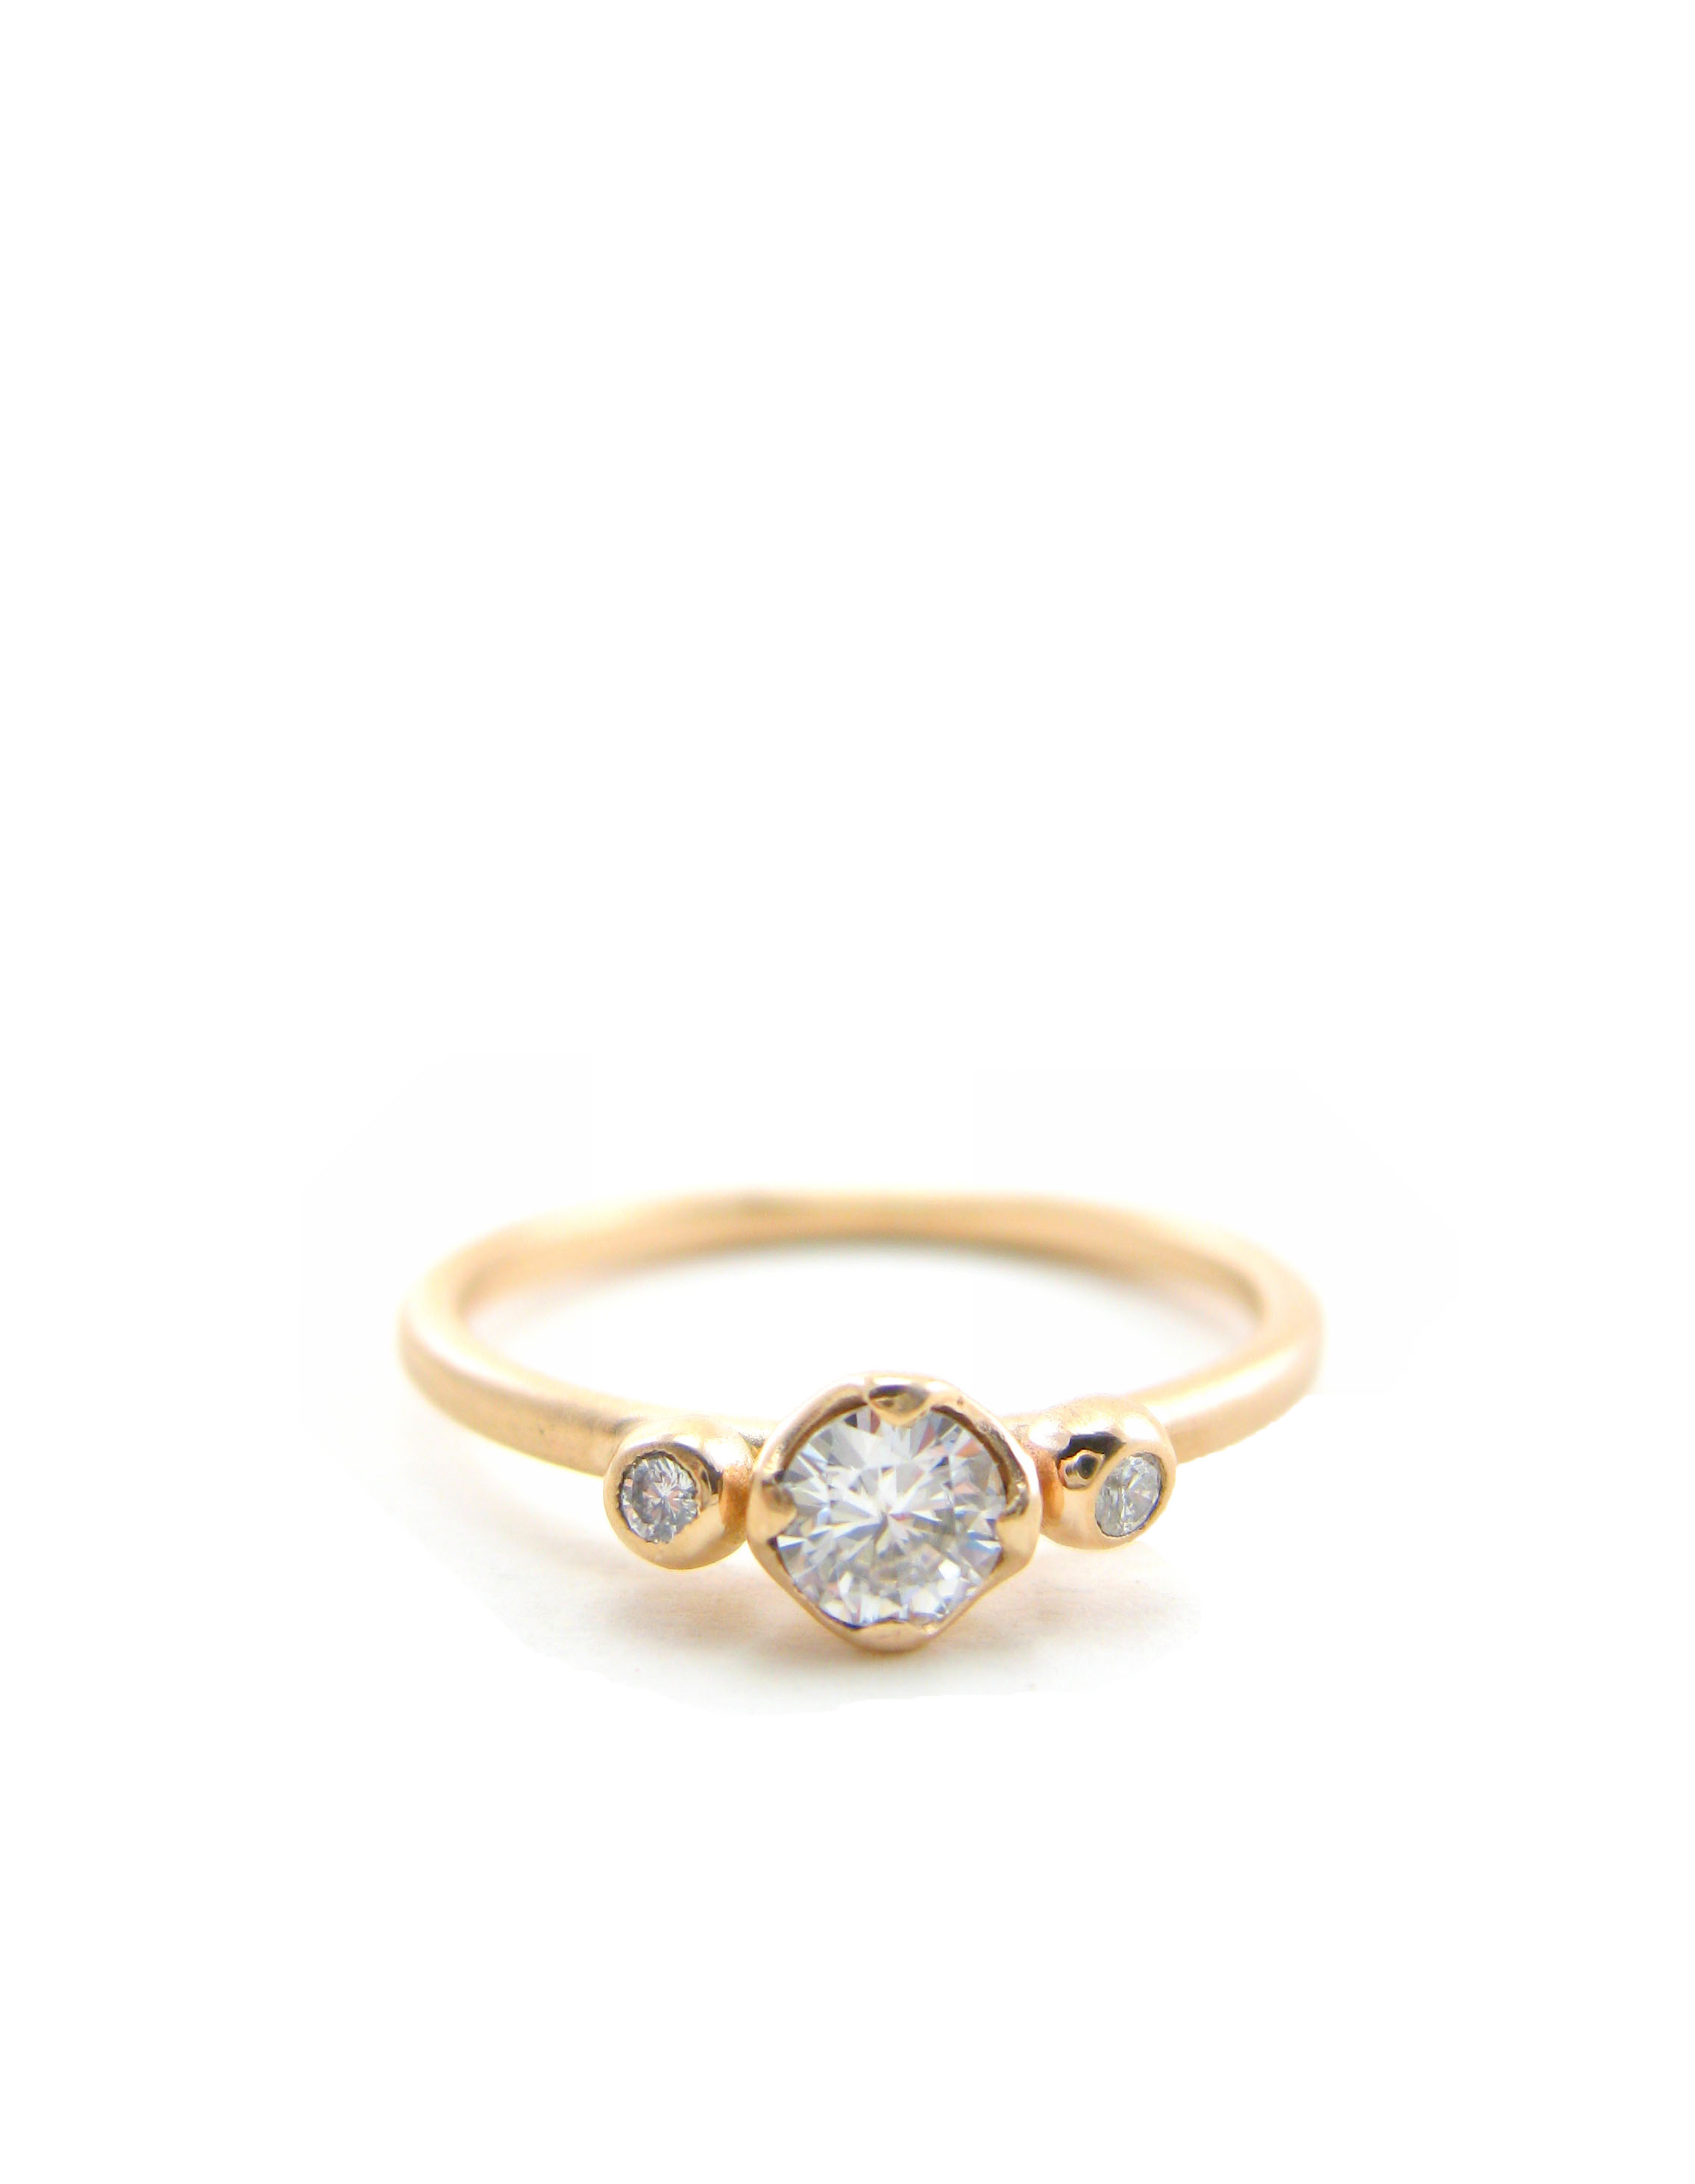 Empress Scepter Moissanite engagement ring in recycled 14 karat gold